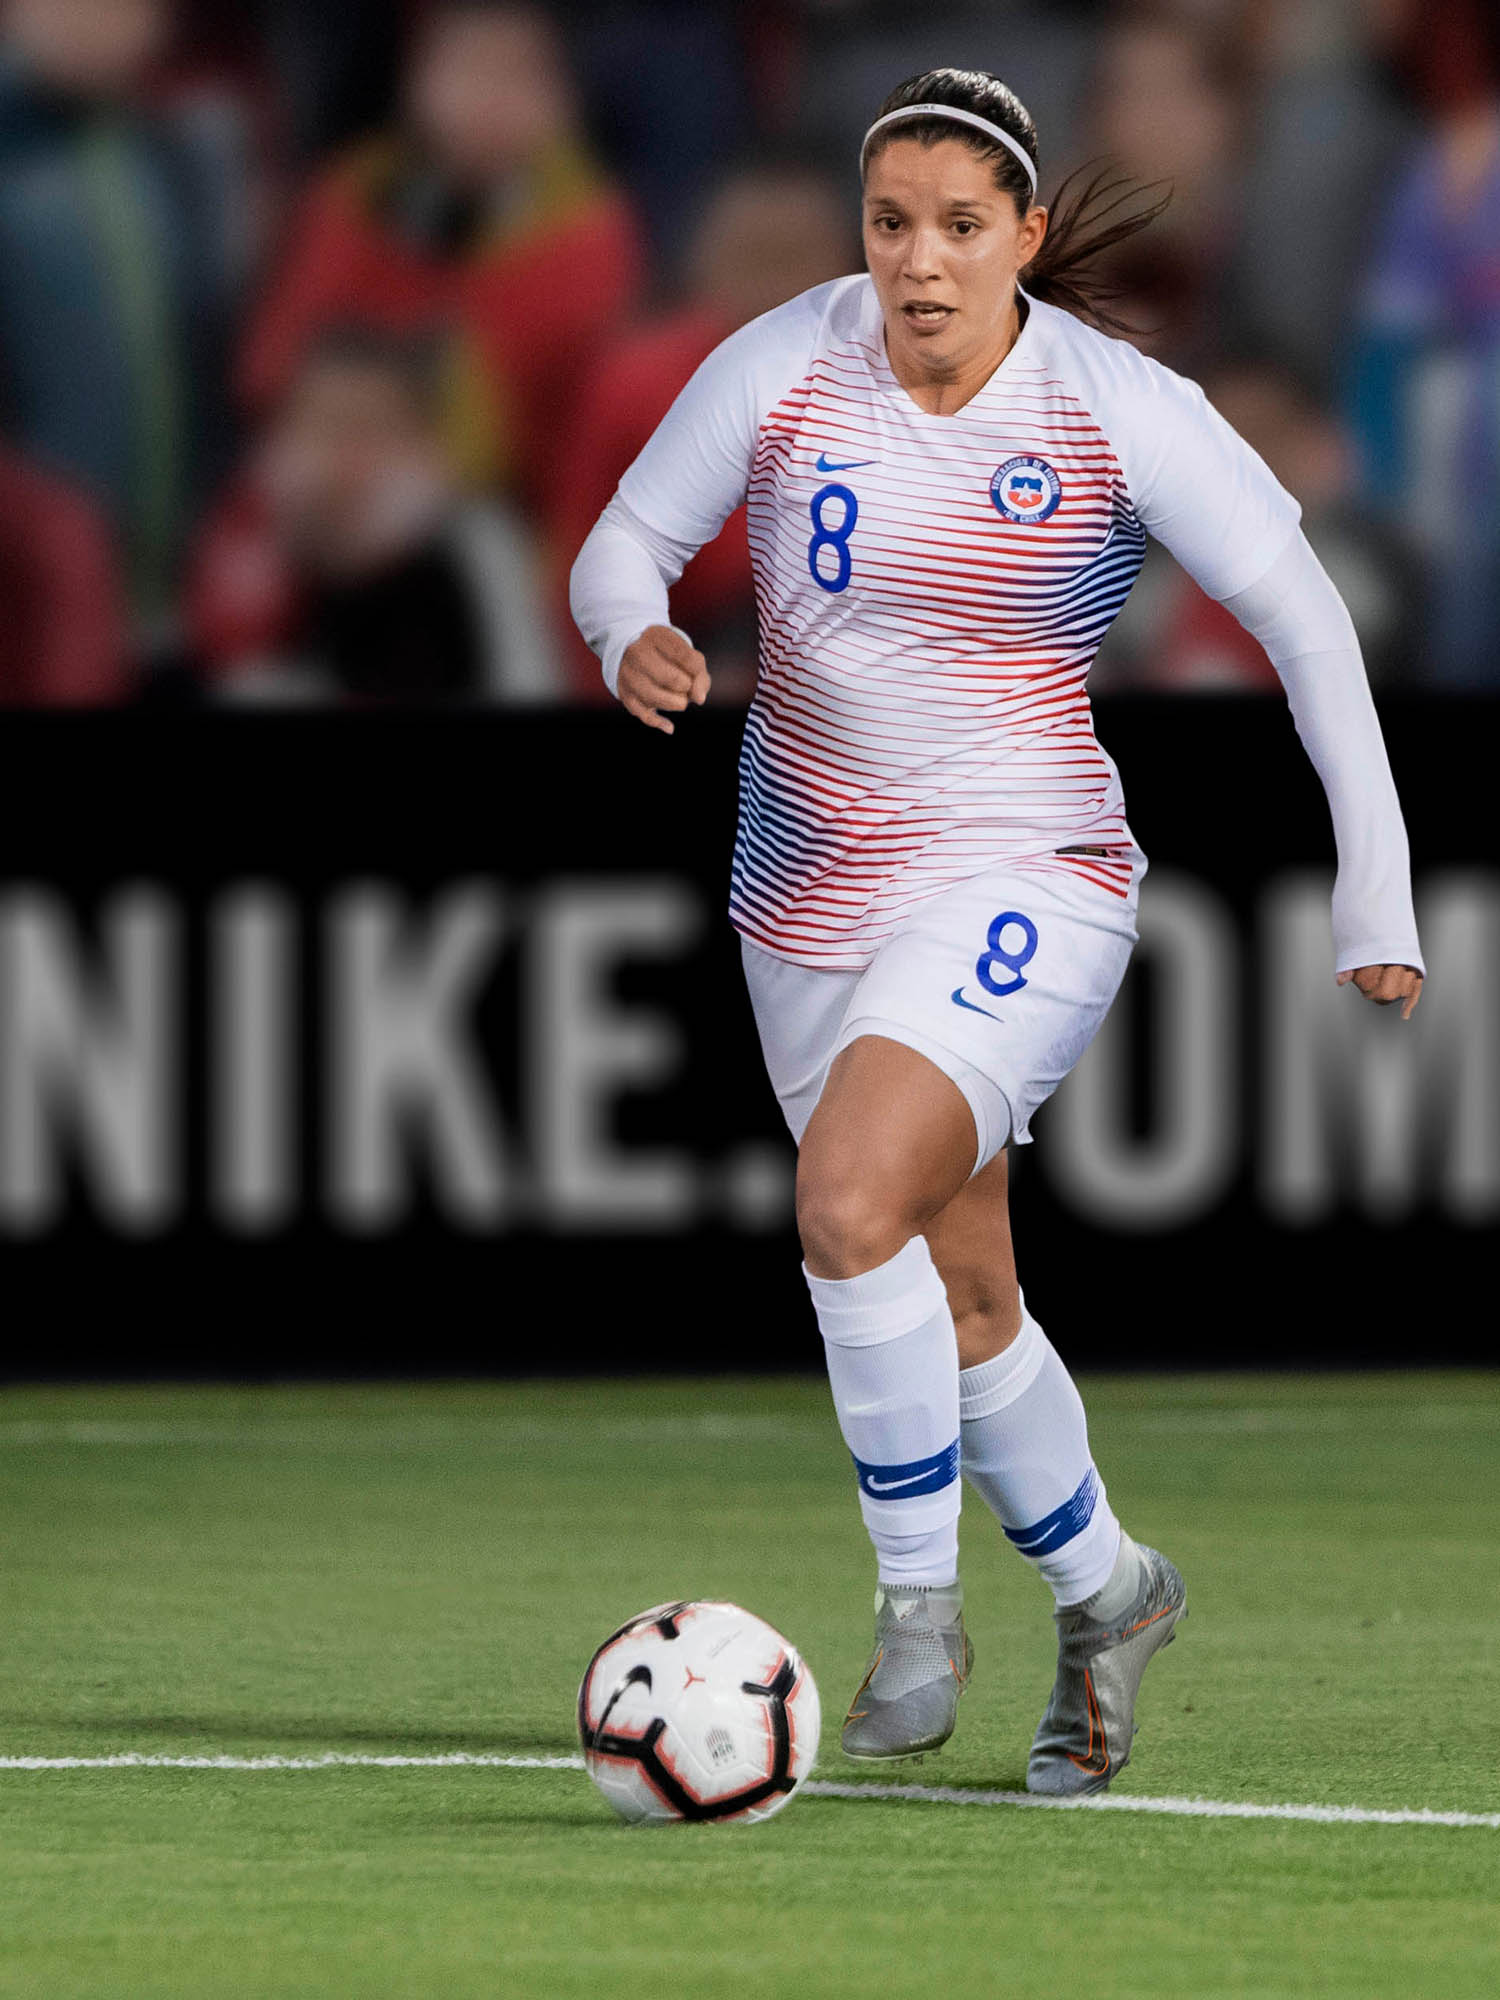 chile nike wwc kits_0000_chile-national-team-kit-2019-performance-001_original.jpg